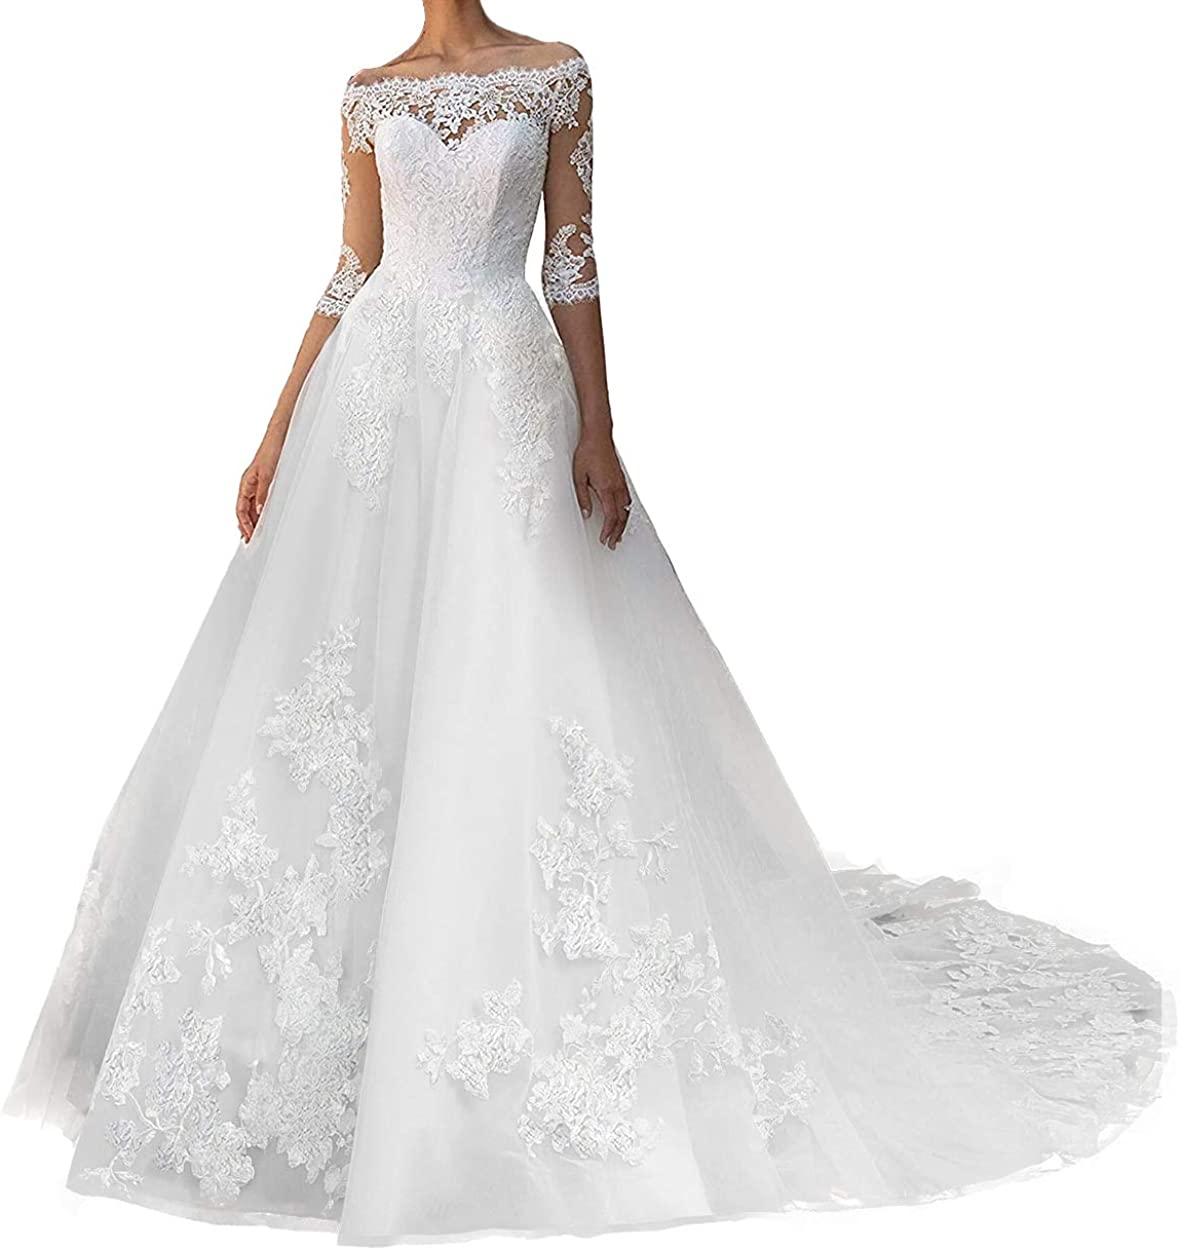 Wedding Dress for Bride Long Sleeves Lace Bridal Gown Off Shoulder Wedding Gowns with Train